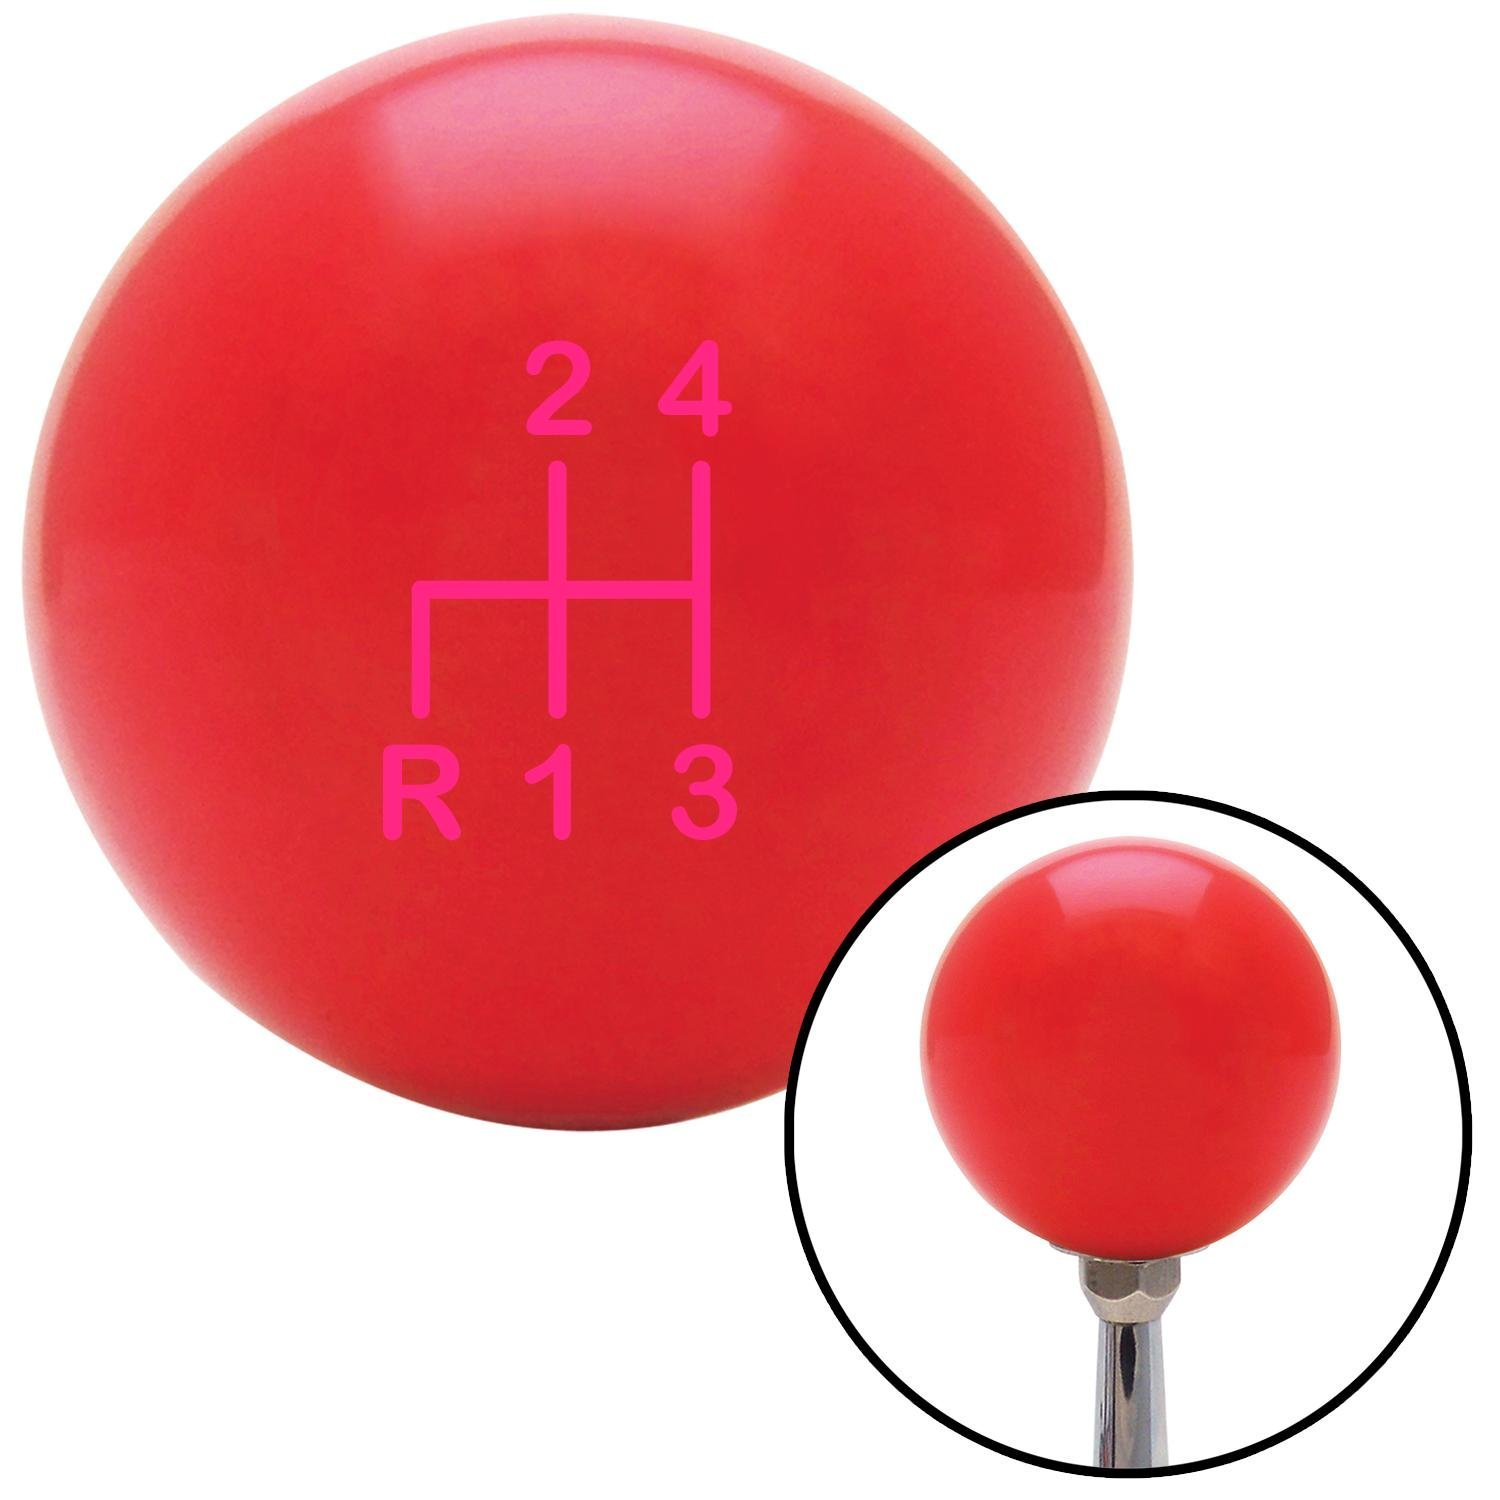 American Shifter 100099 Red Shift Knob with M16 x 1.5 Insert Pink Shift Pattern 2n